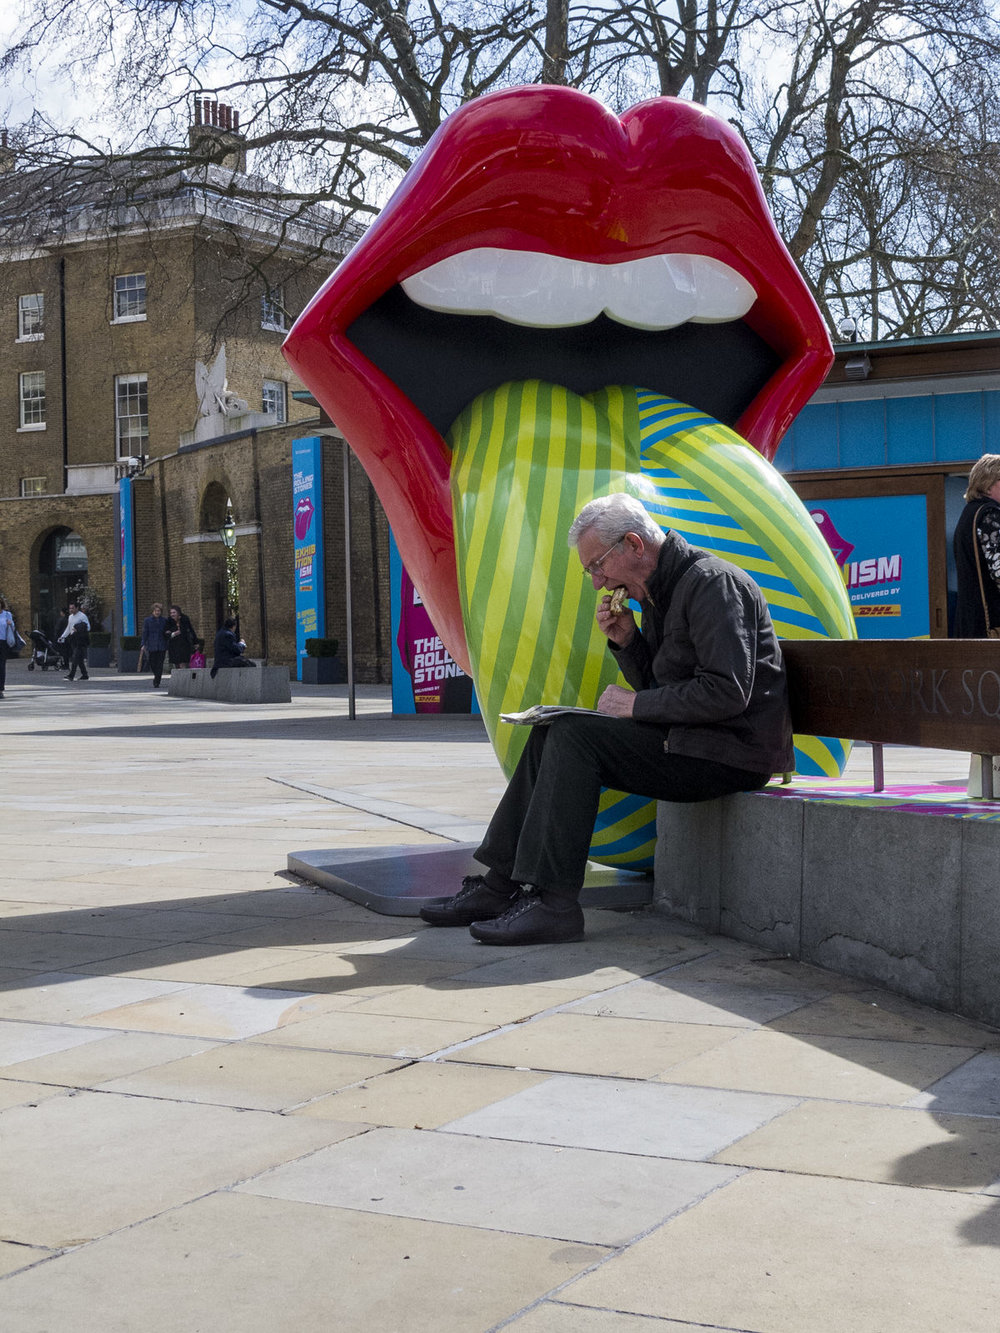 Rolling Stones Exhiition.jpg